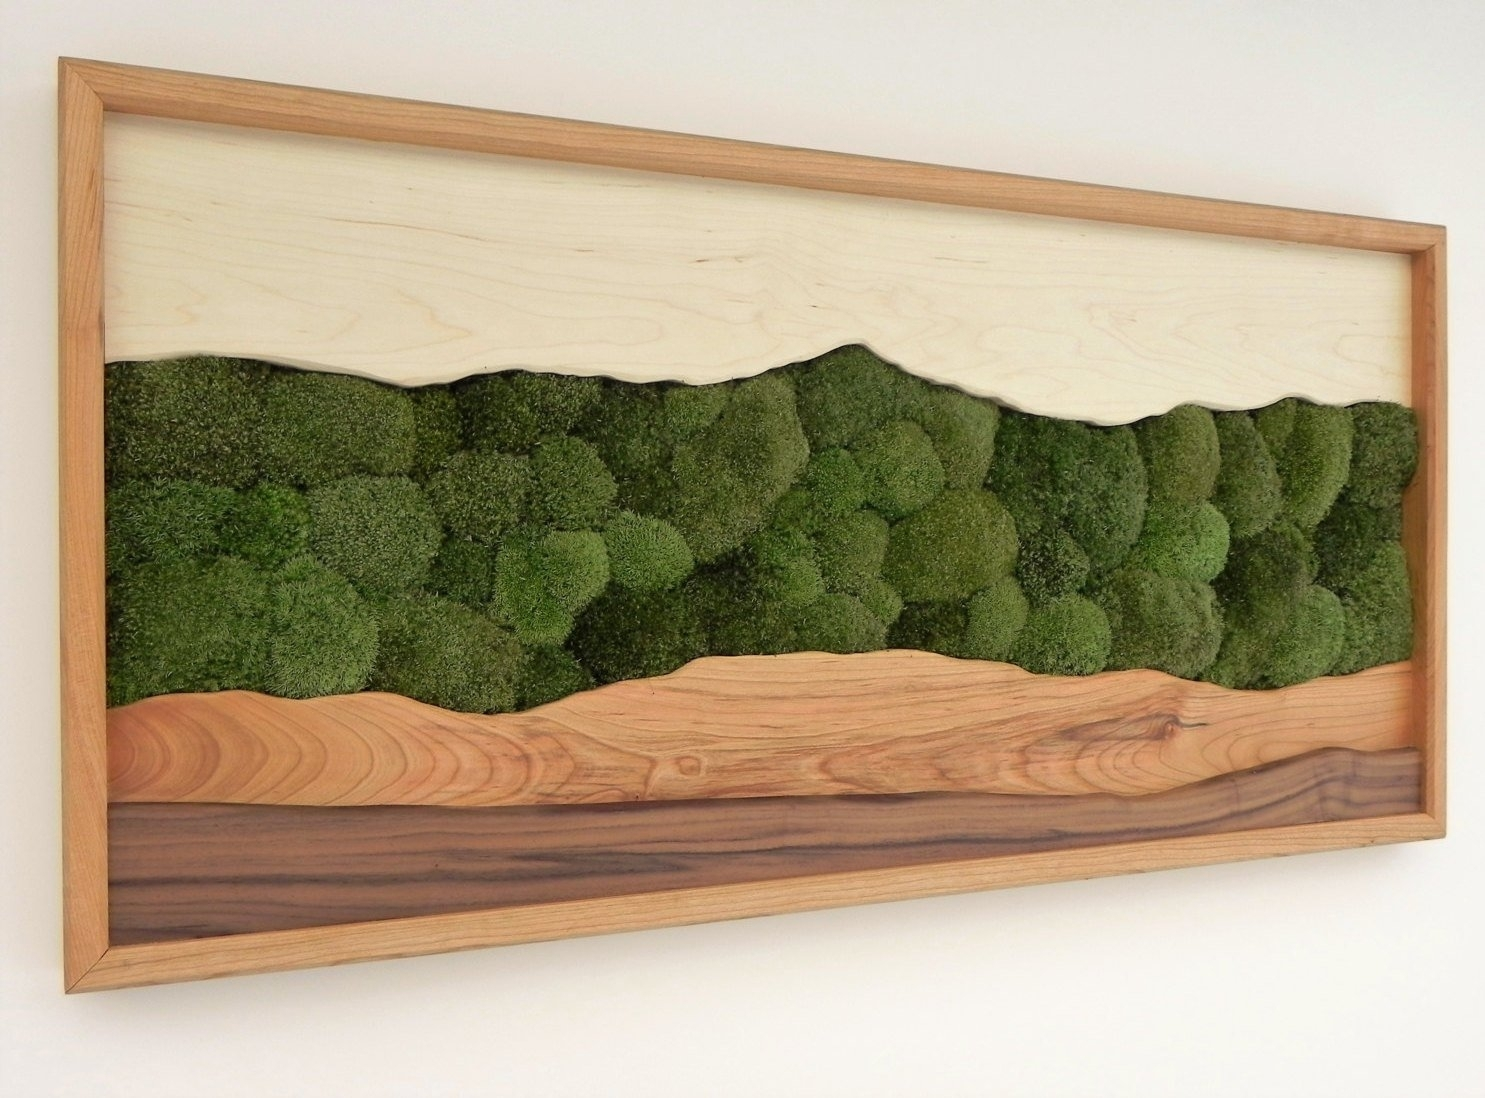 Green Mountain Moss Wall Art /sugar Maple, Cherry, Walnut, Preserved Regarding 2018 Moss Wall Art (Gallery 18 of 20)